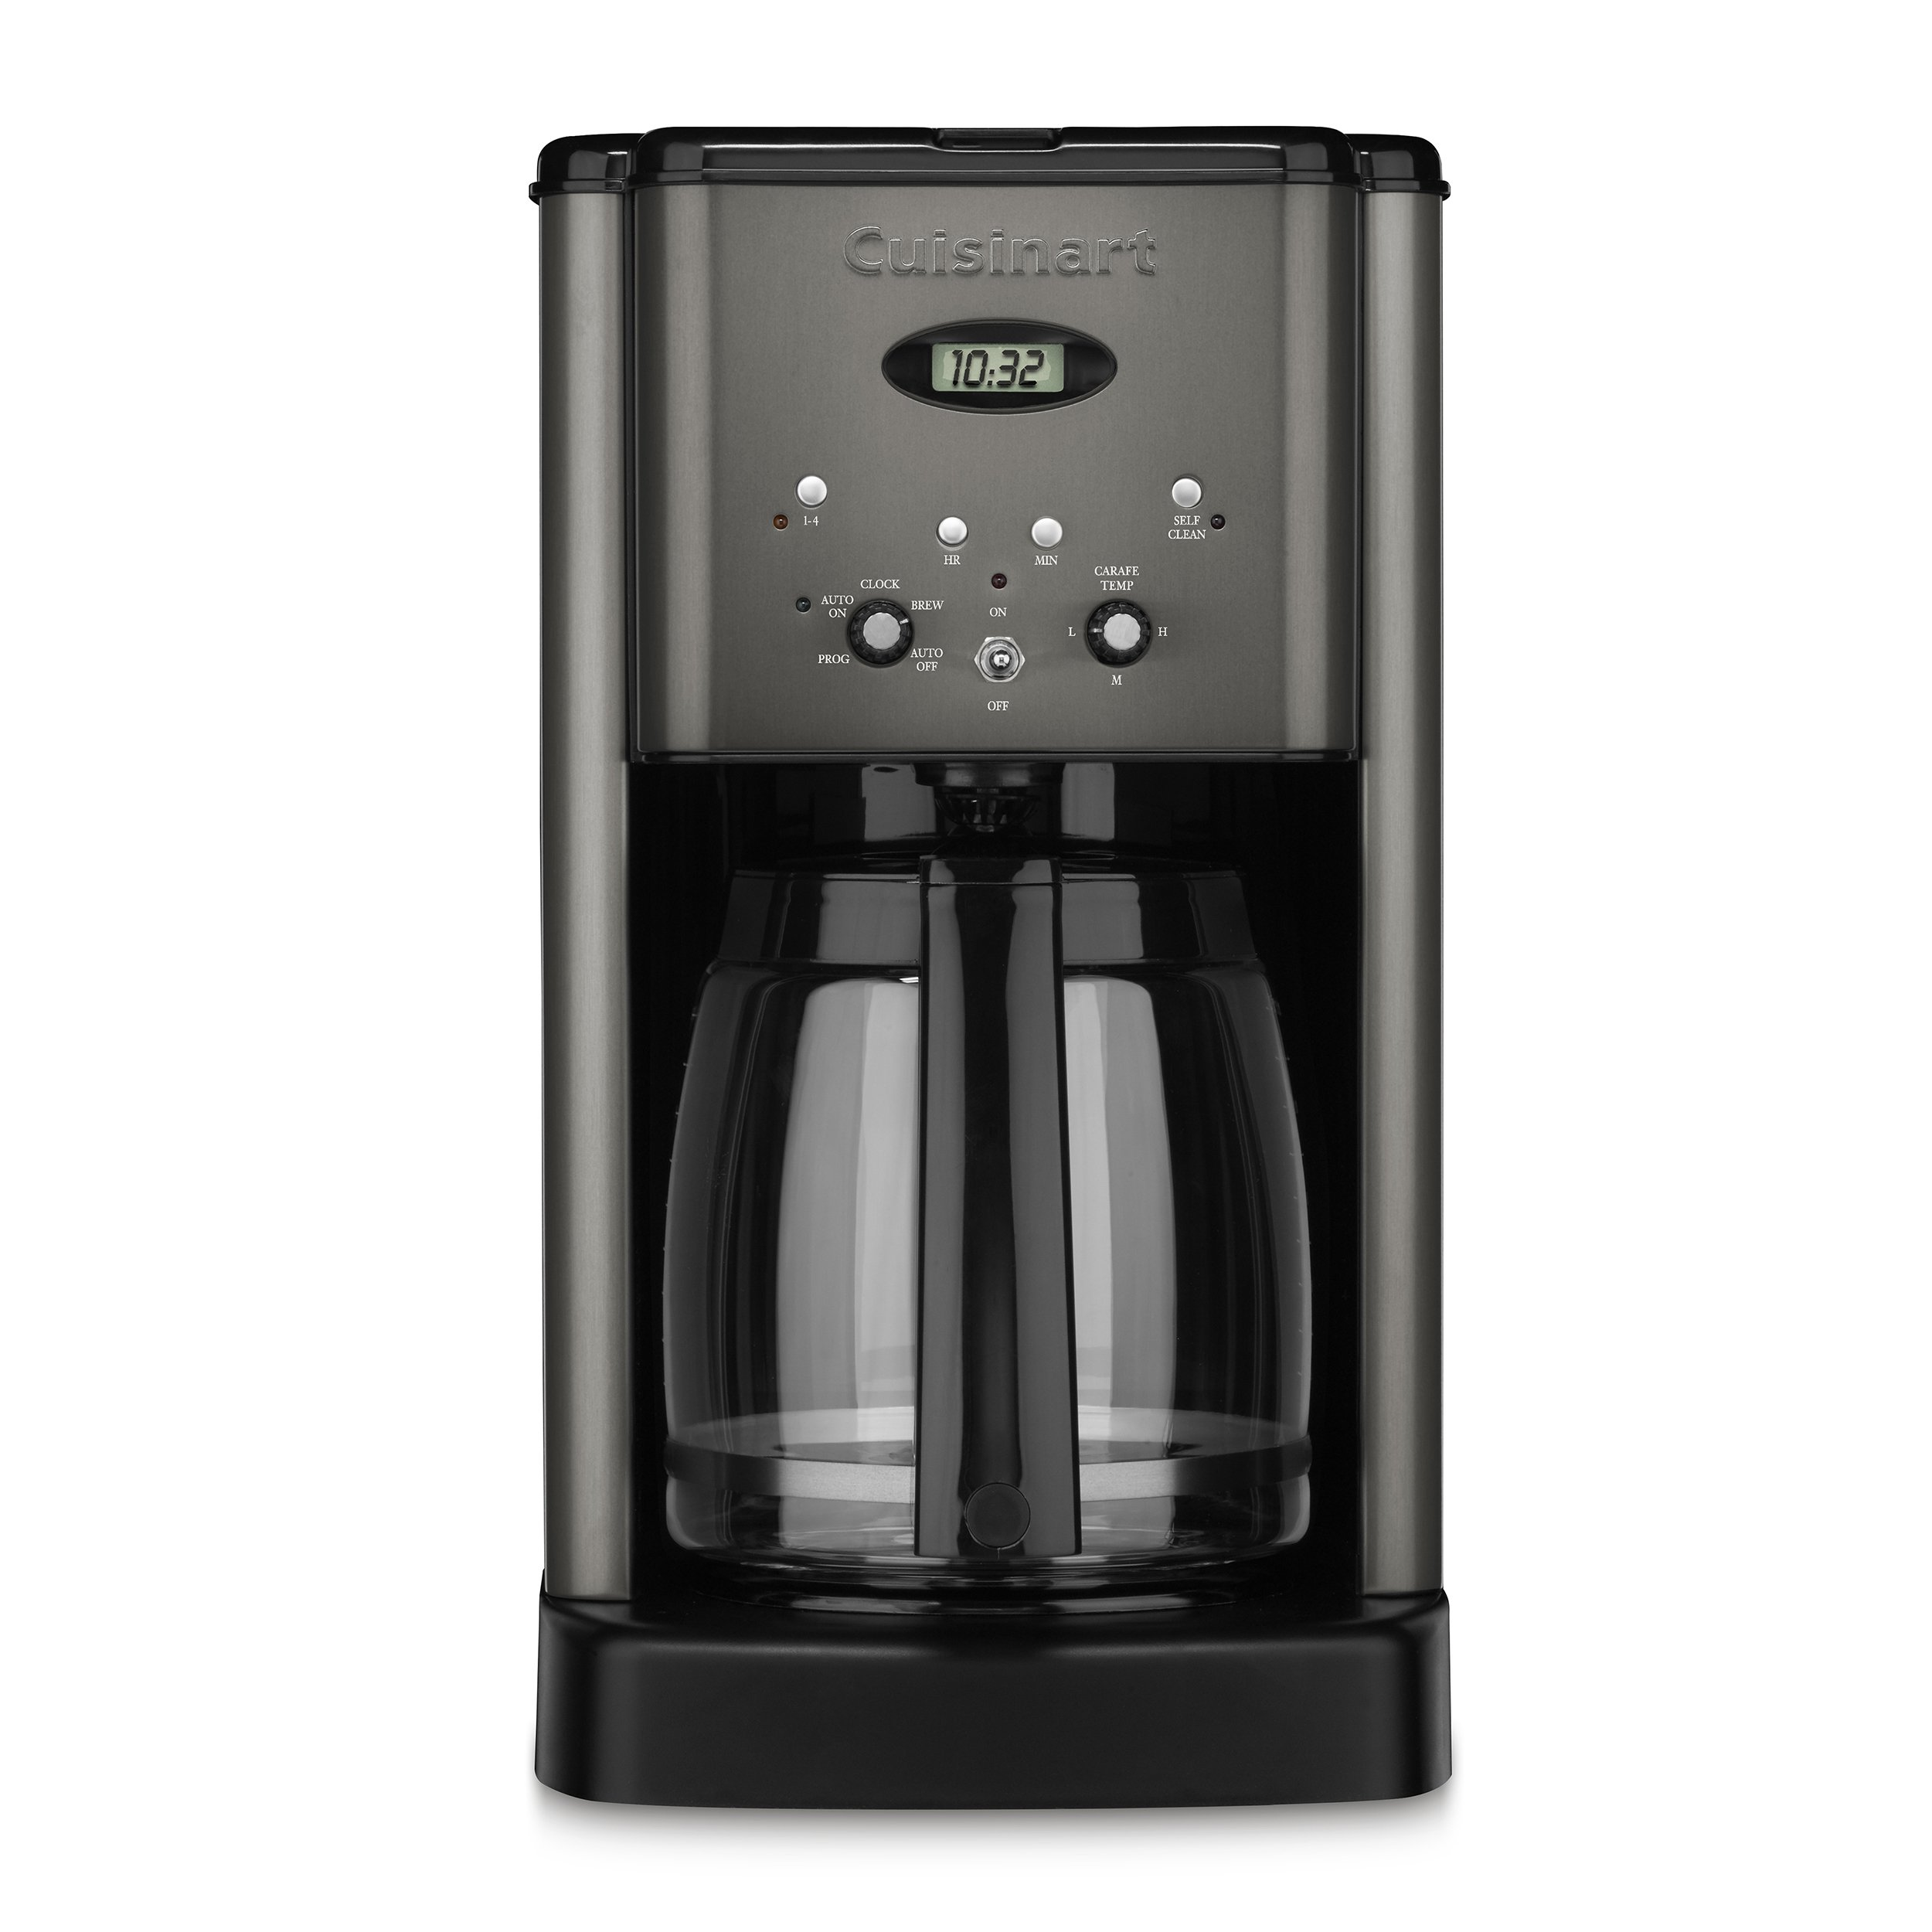 Cuisinart DCC-1200BKS Brew Central Coffee Maker, Black Stainless